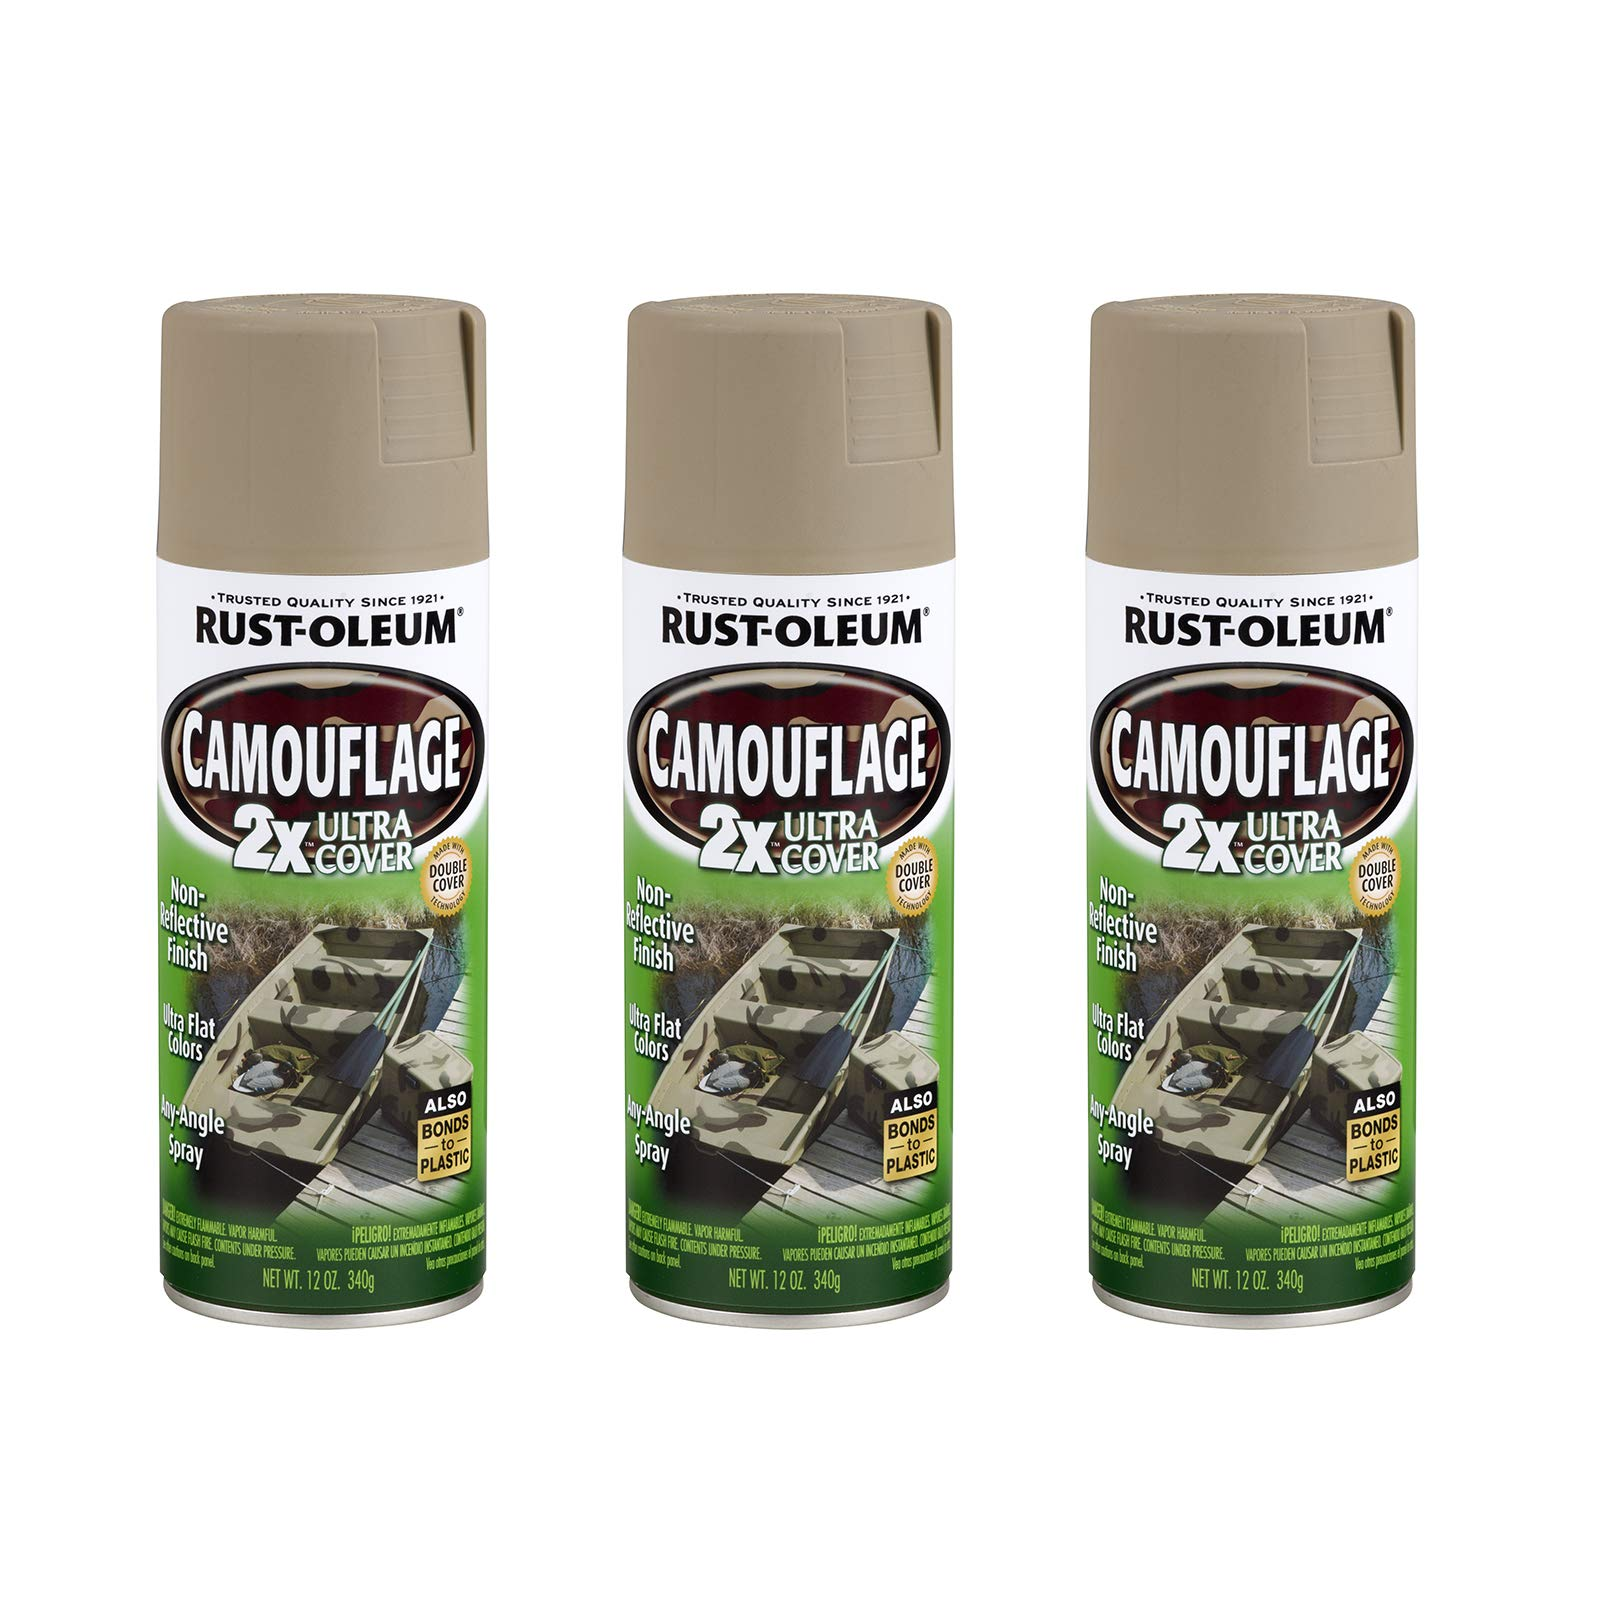 Rust-Oleum 279177A3 Camouflage 2X Ultra Cover Spray Paint, 3 Pack, Khaki